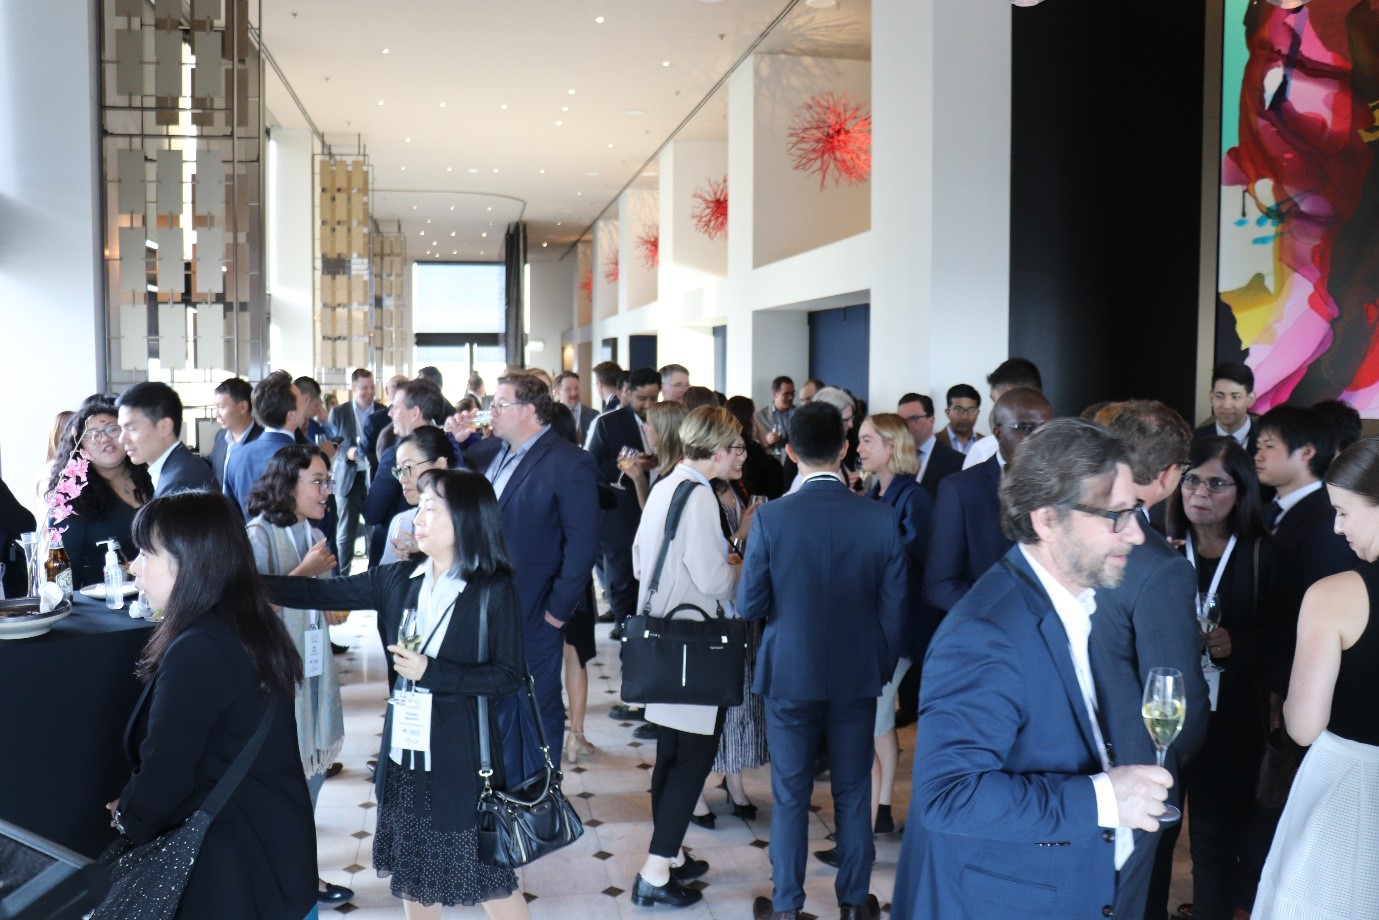 Welcome reception - image 2